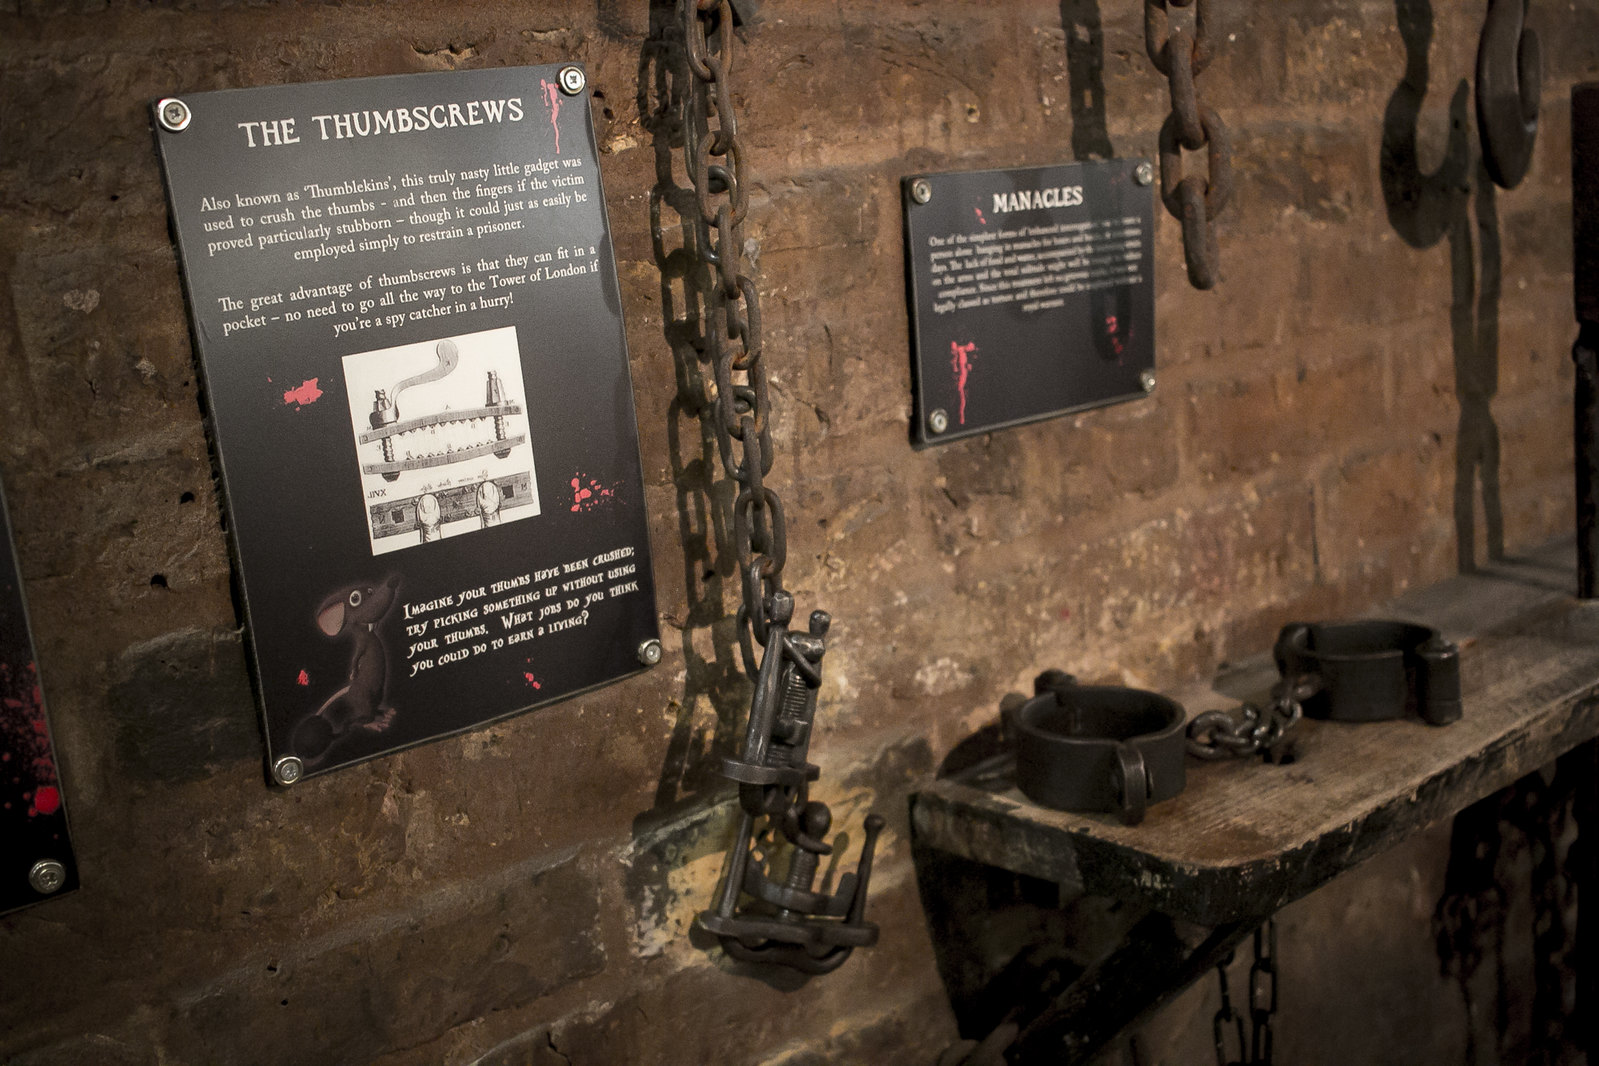 the clink, prison museum, the clink london, thumbscrews, manacles, medieval prison